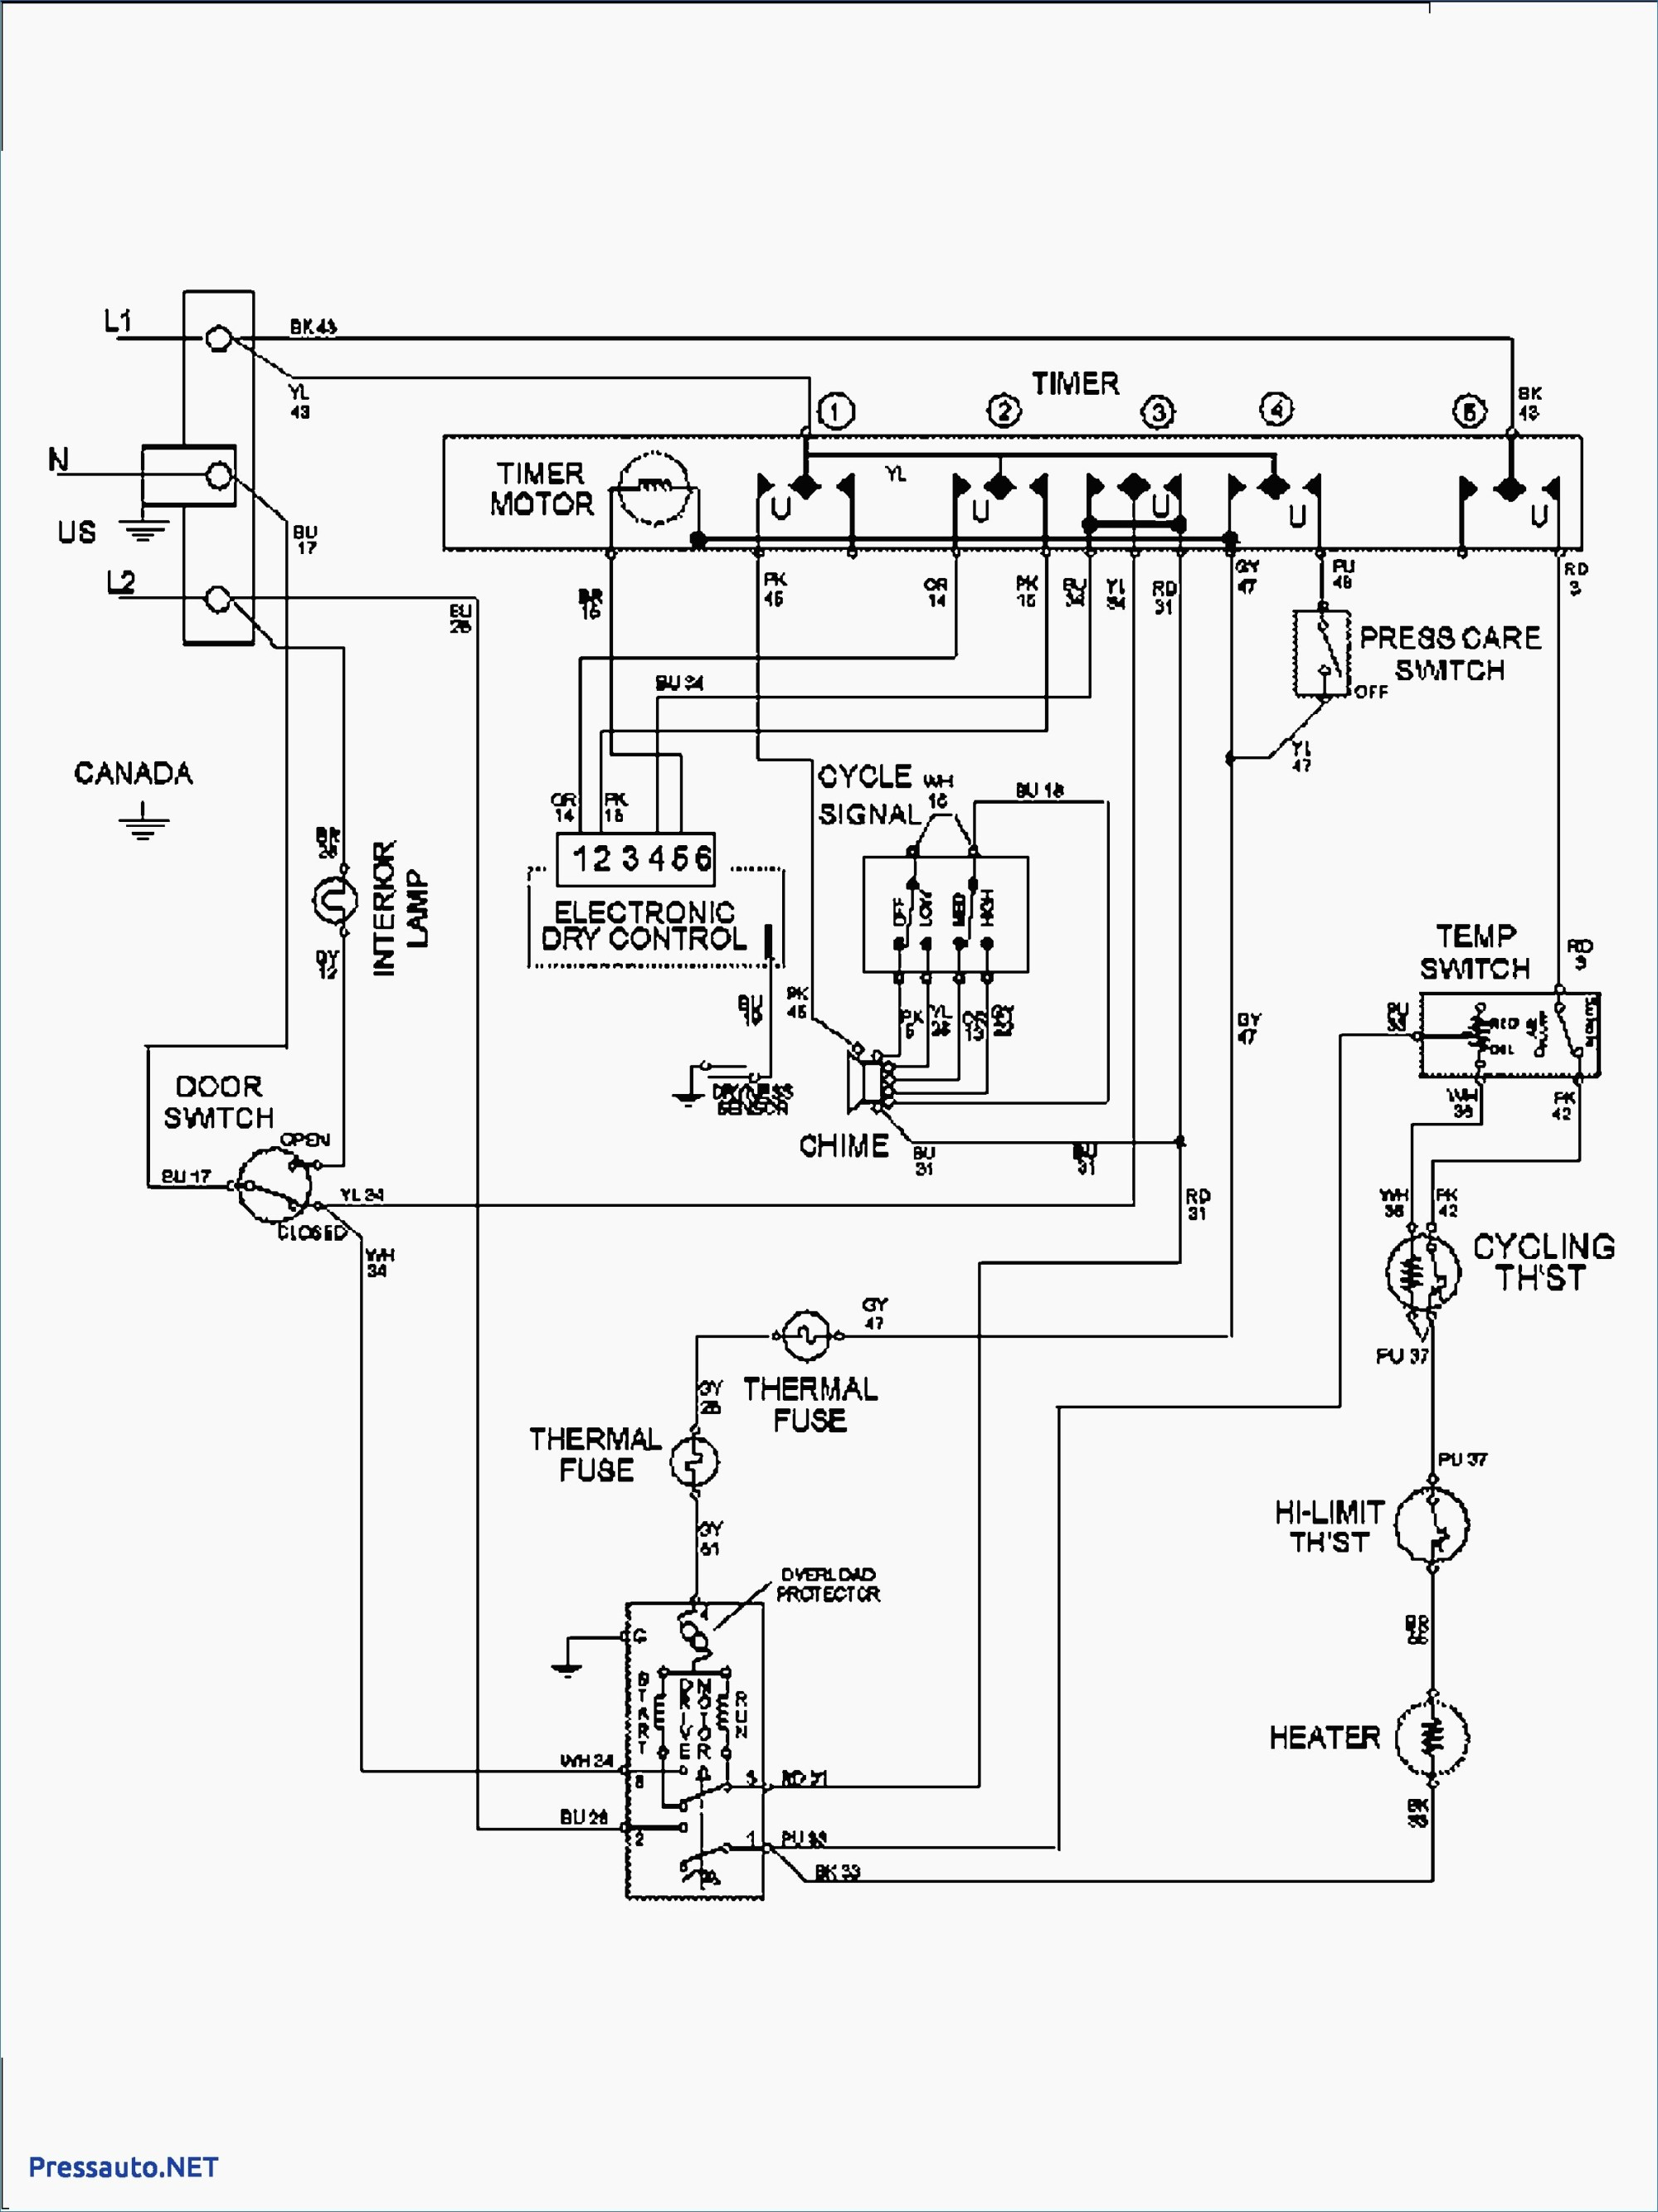 hight resolution of kitchen schematics wiring colors wiring library kitchen schematics wiring colors